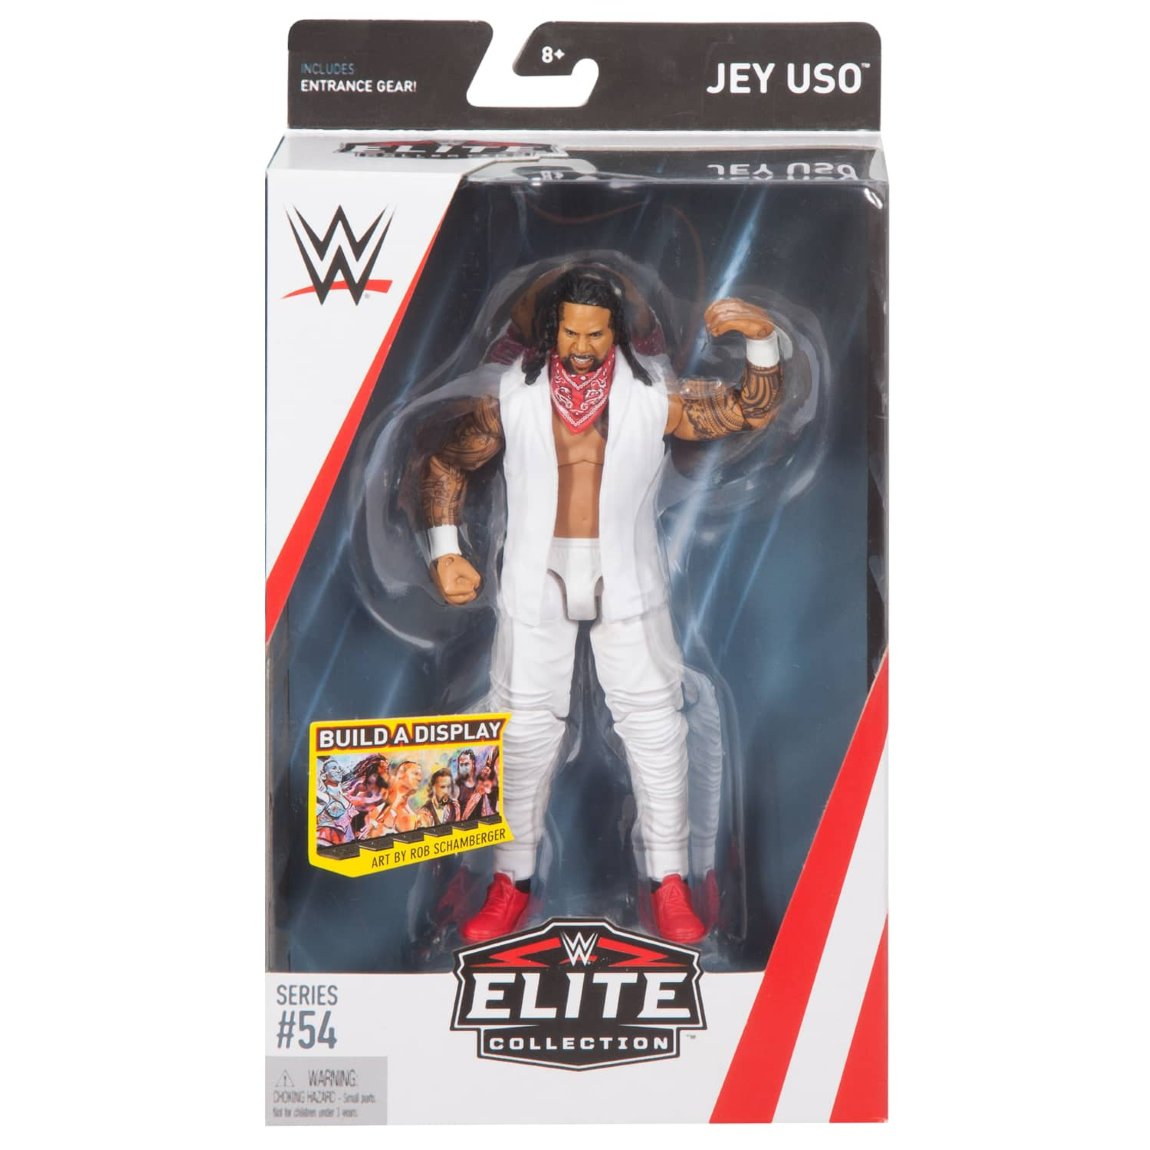 WWE Jey Uso Elite Collection Action Figure